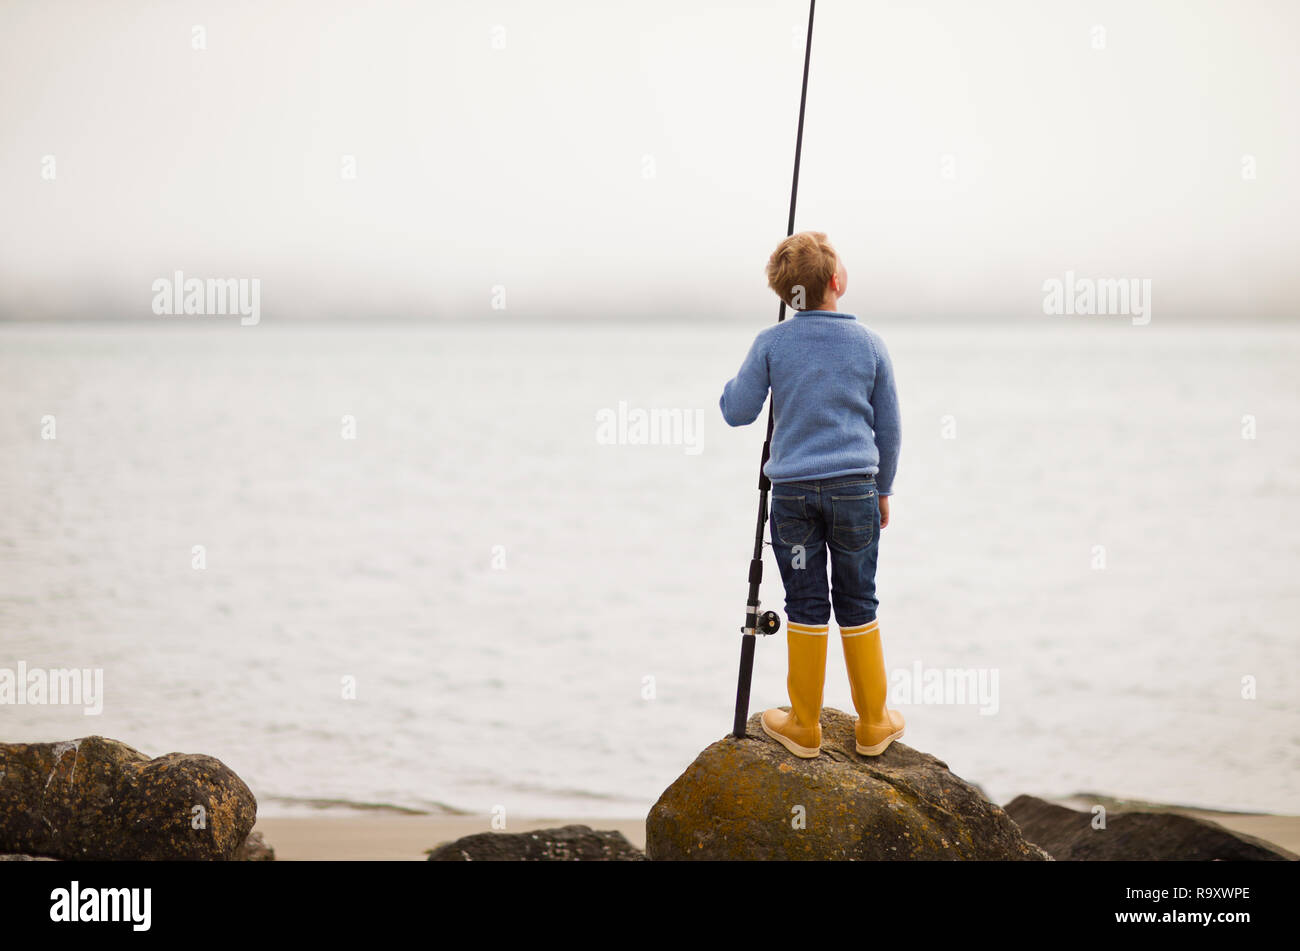 Young by standing on a rock holding a fishing rod. Stock Photo